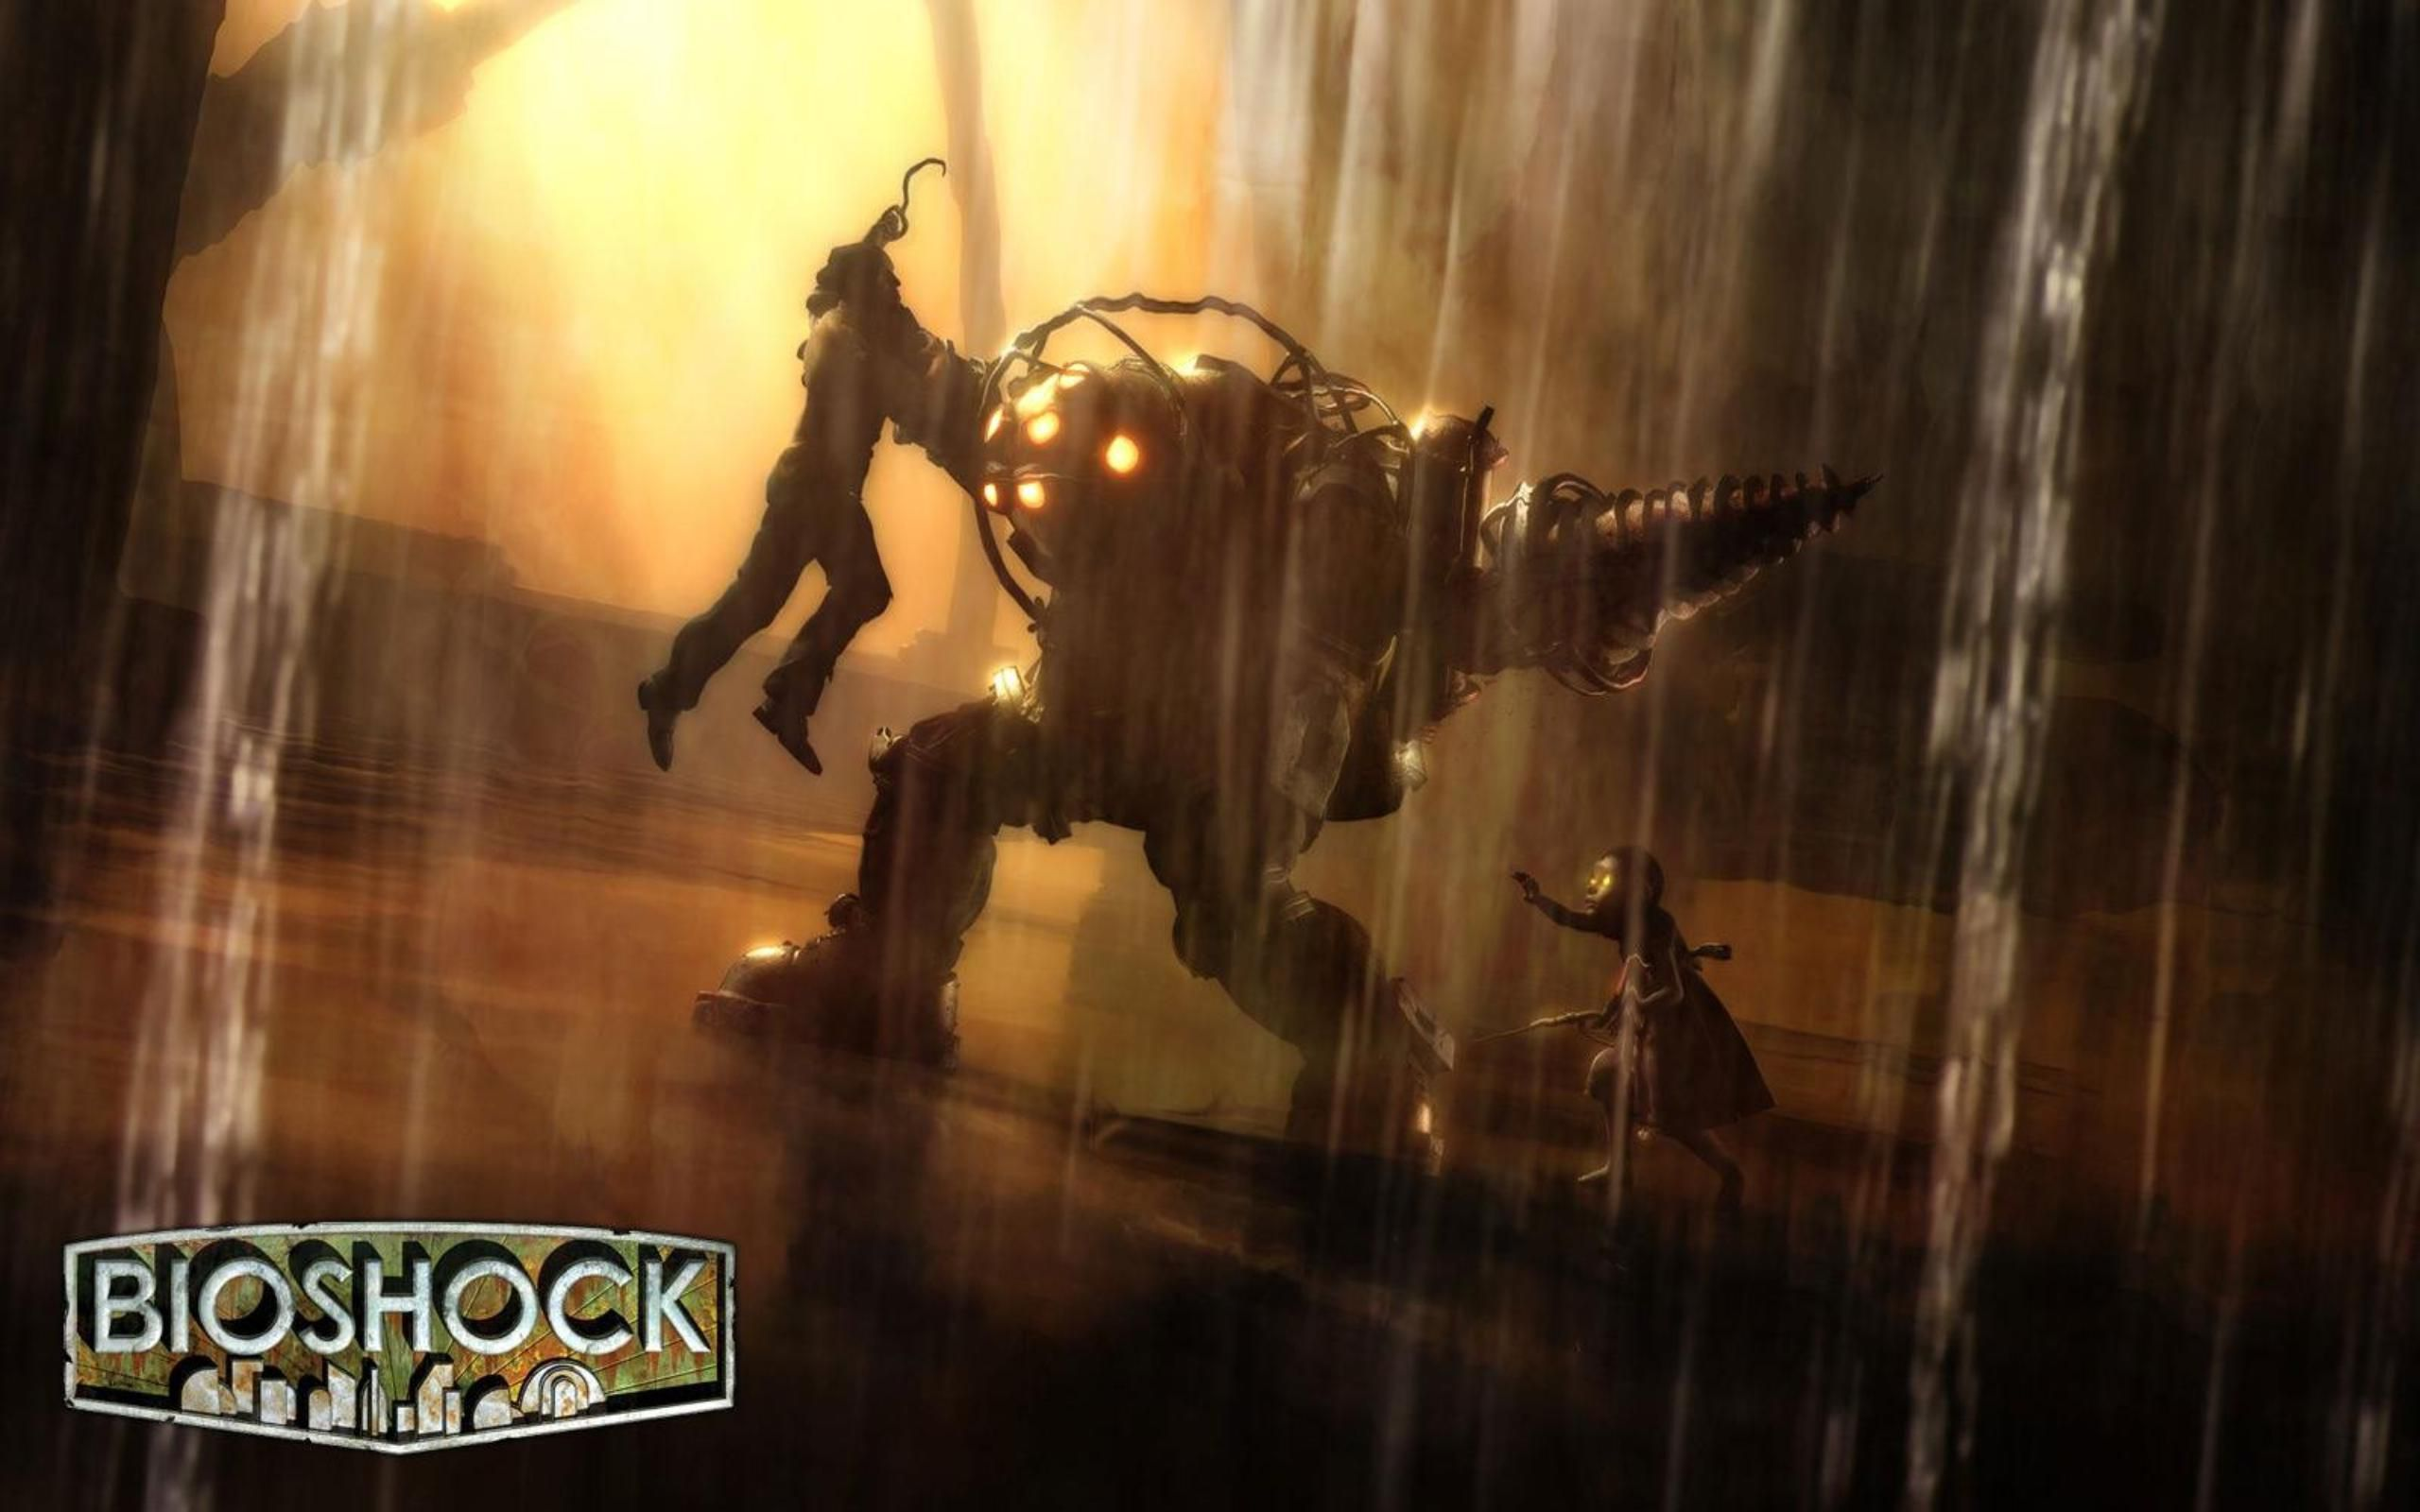 Bioshock Pictures